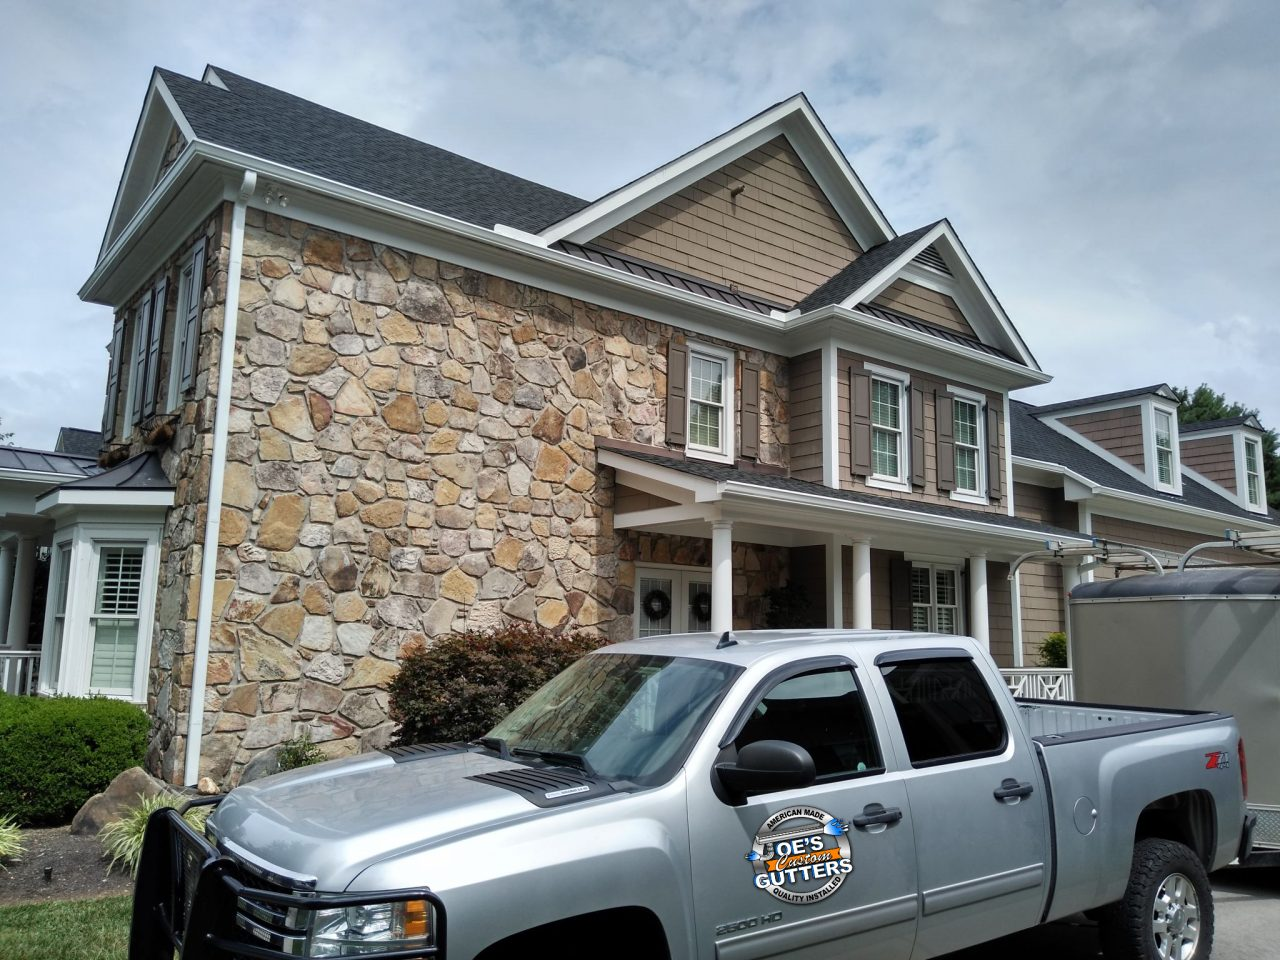 Gutter and Downspout Cleaning | Joe's Gutters Knoxville TN